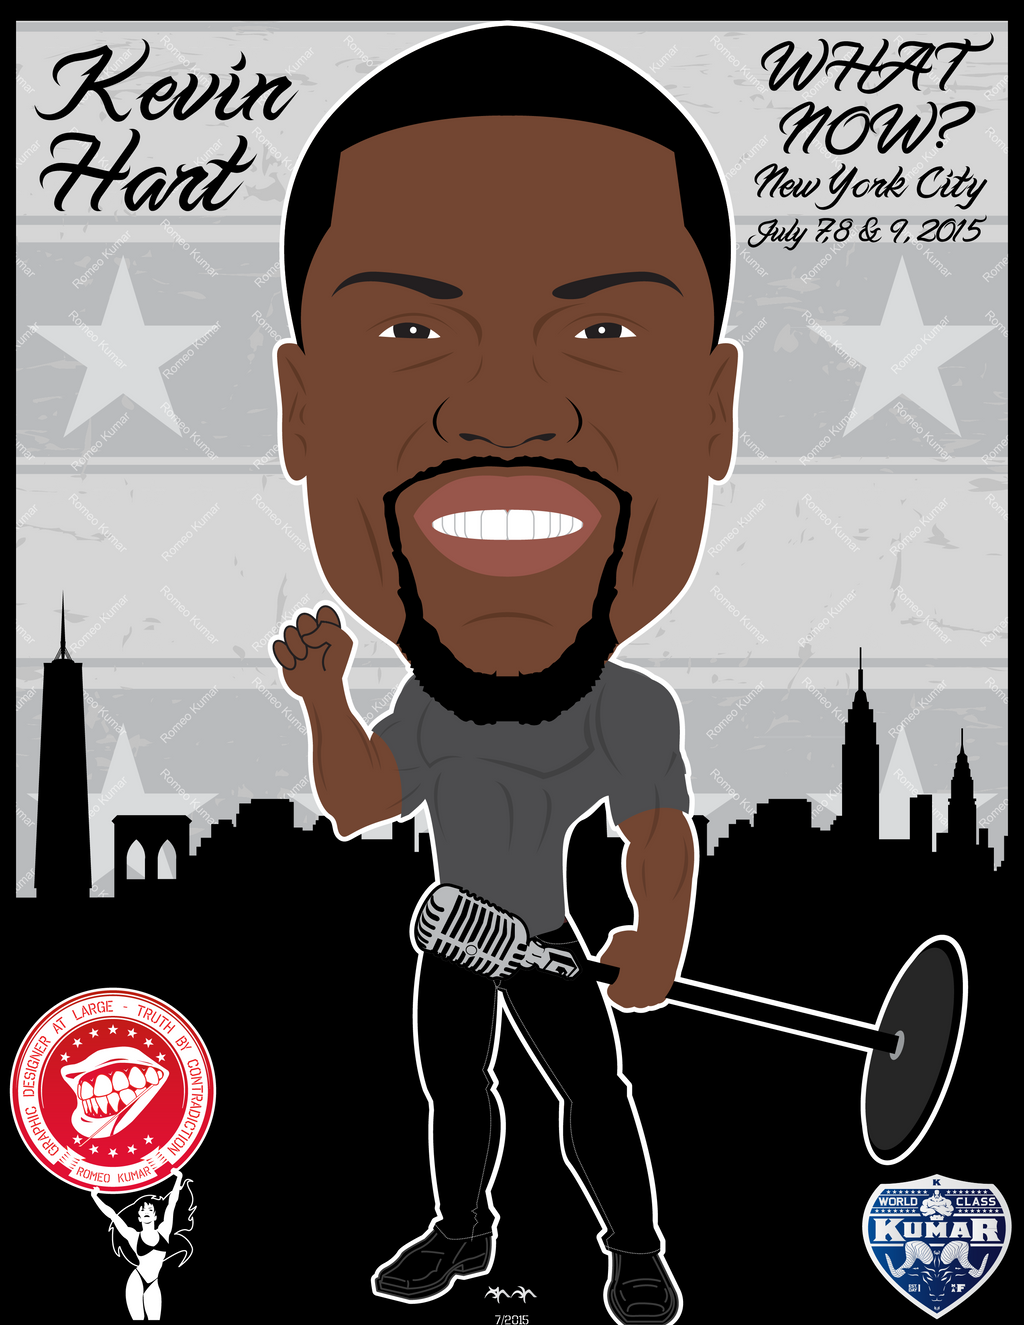 Kevin Hart Tour What Now Philadelphia